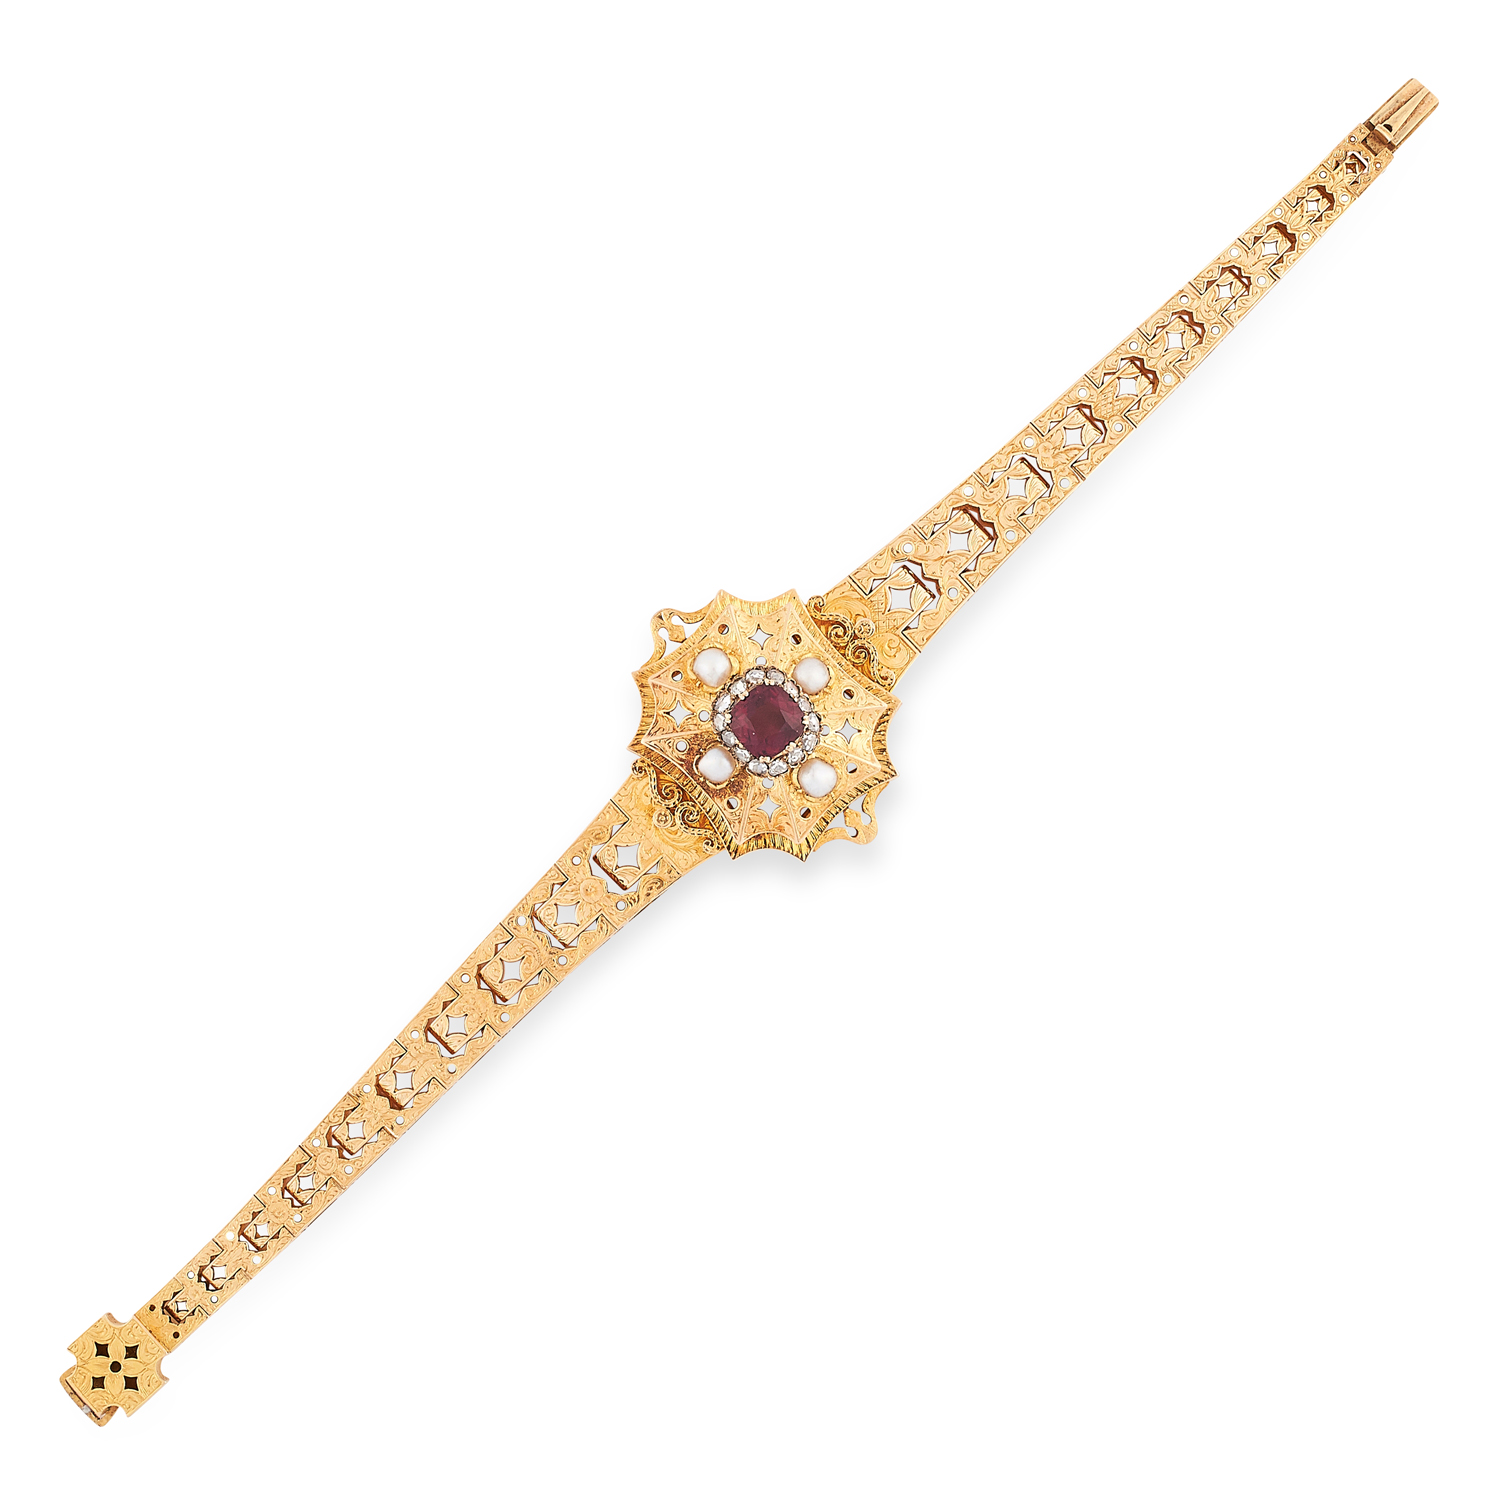 AN ANTIQUE GARNET, DIAMOND AND PEARL BRACELET, 19TH CENTURY in yellow gold, the tapering body with